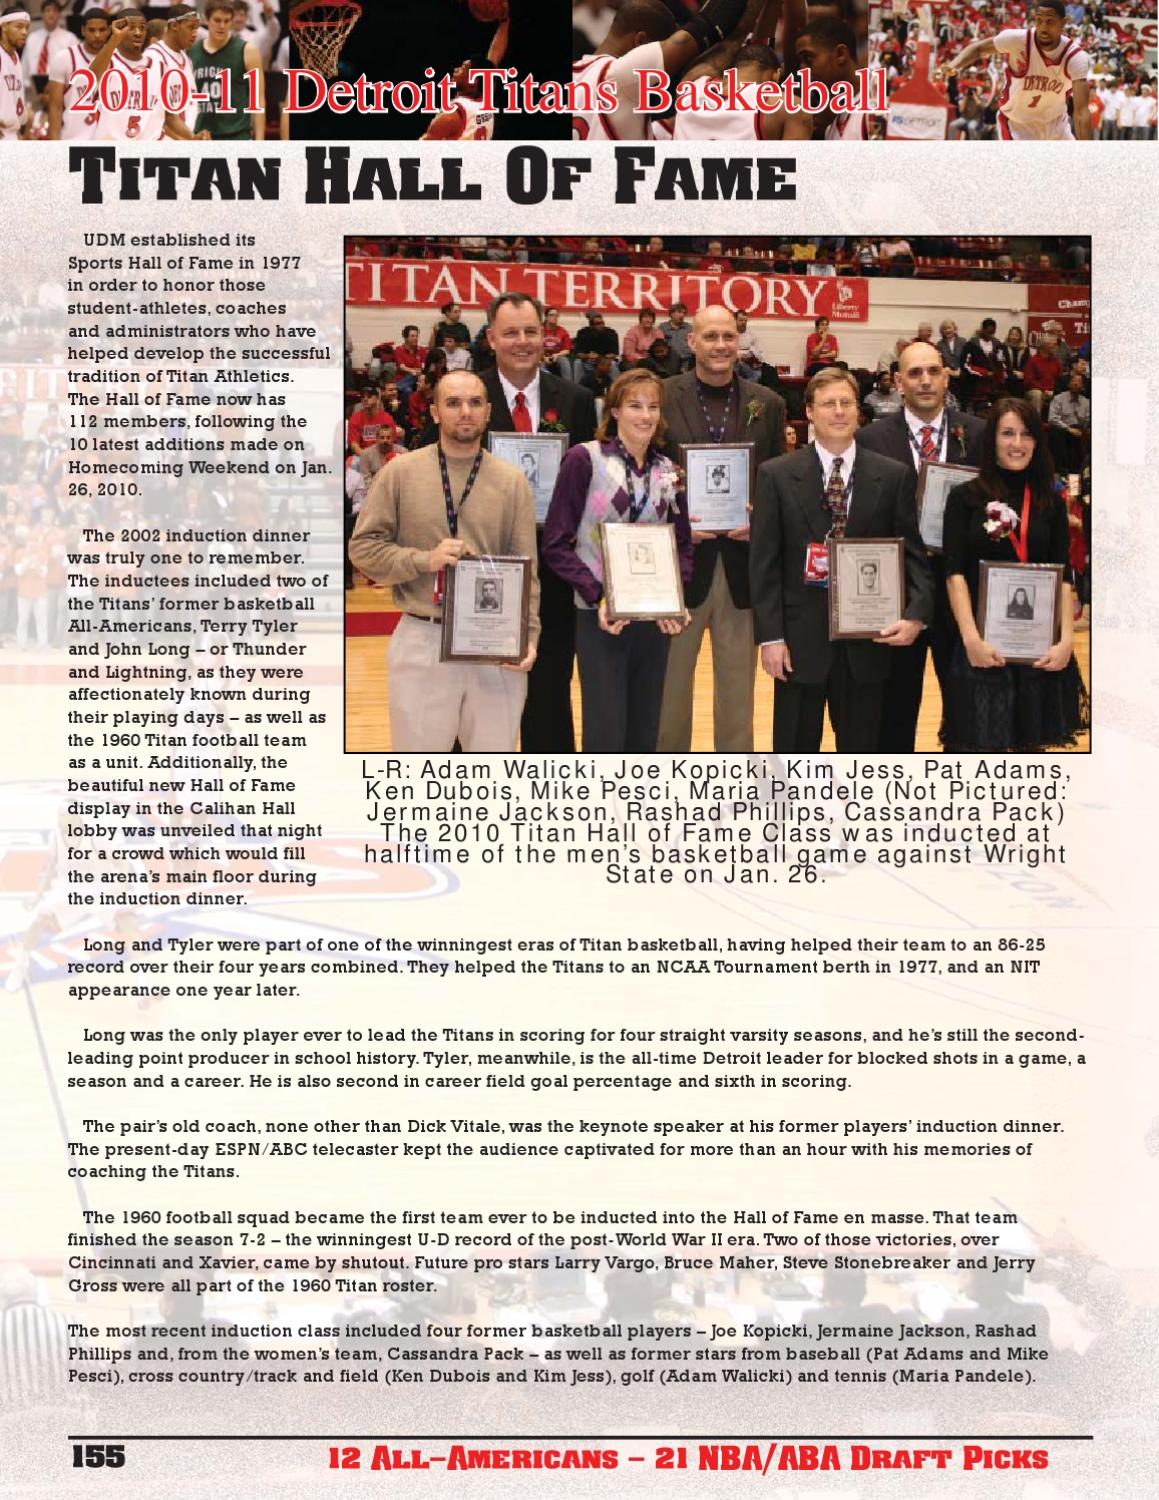 The 2010-11 Detroit Titans Men's Basketball Yearbook by P J